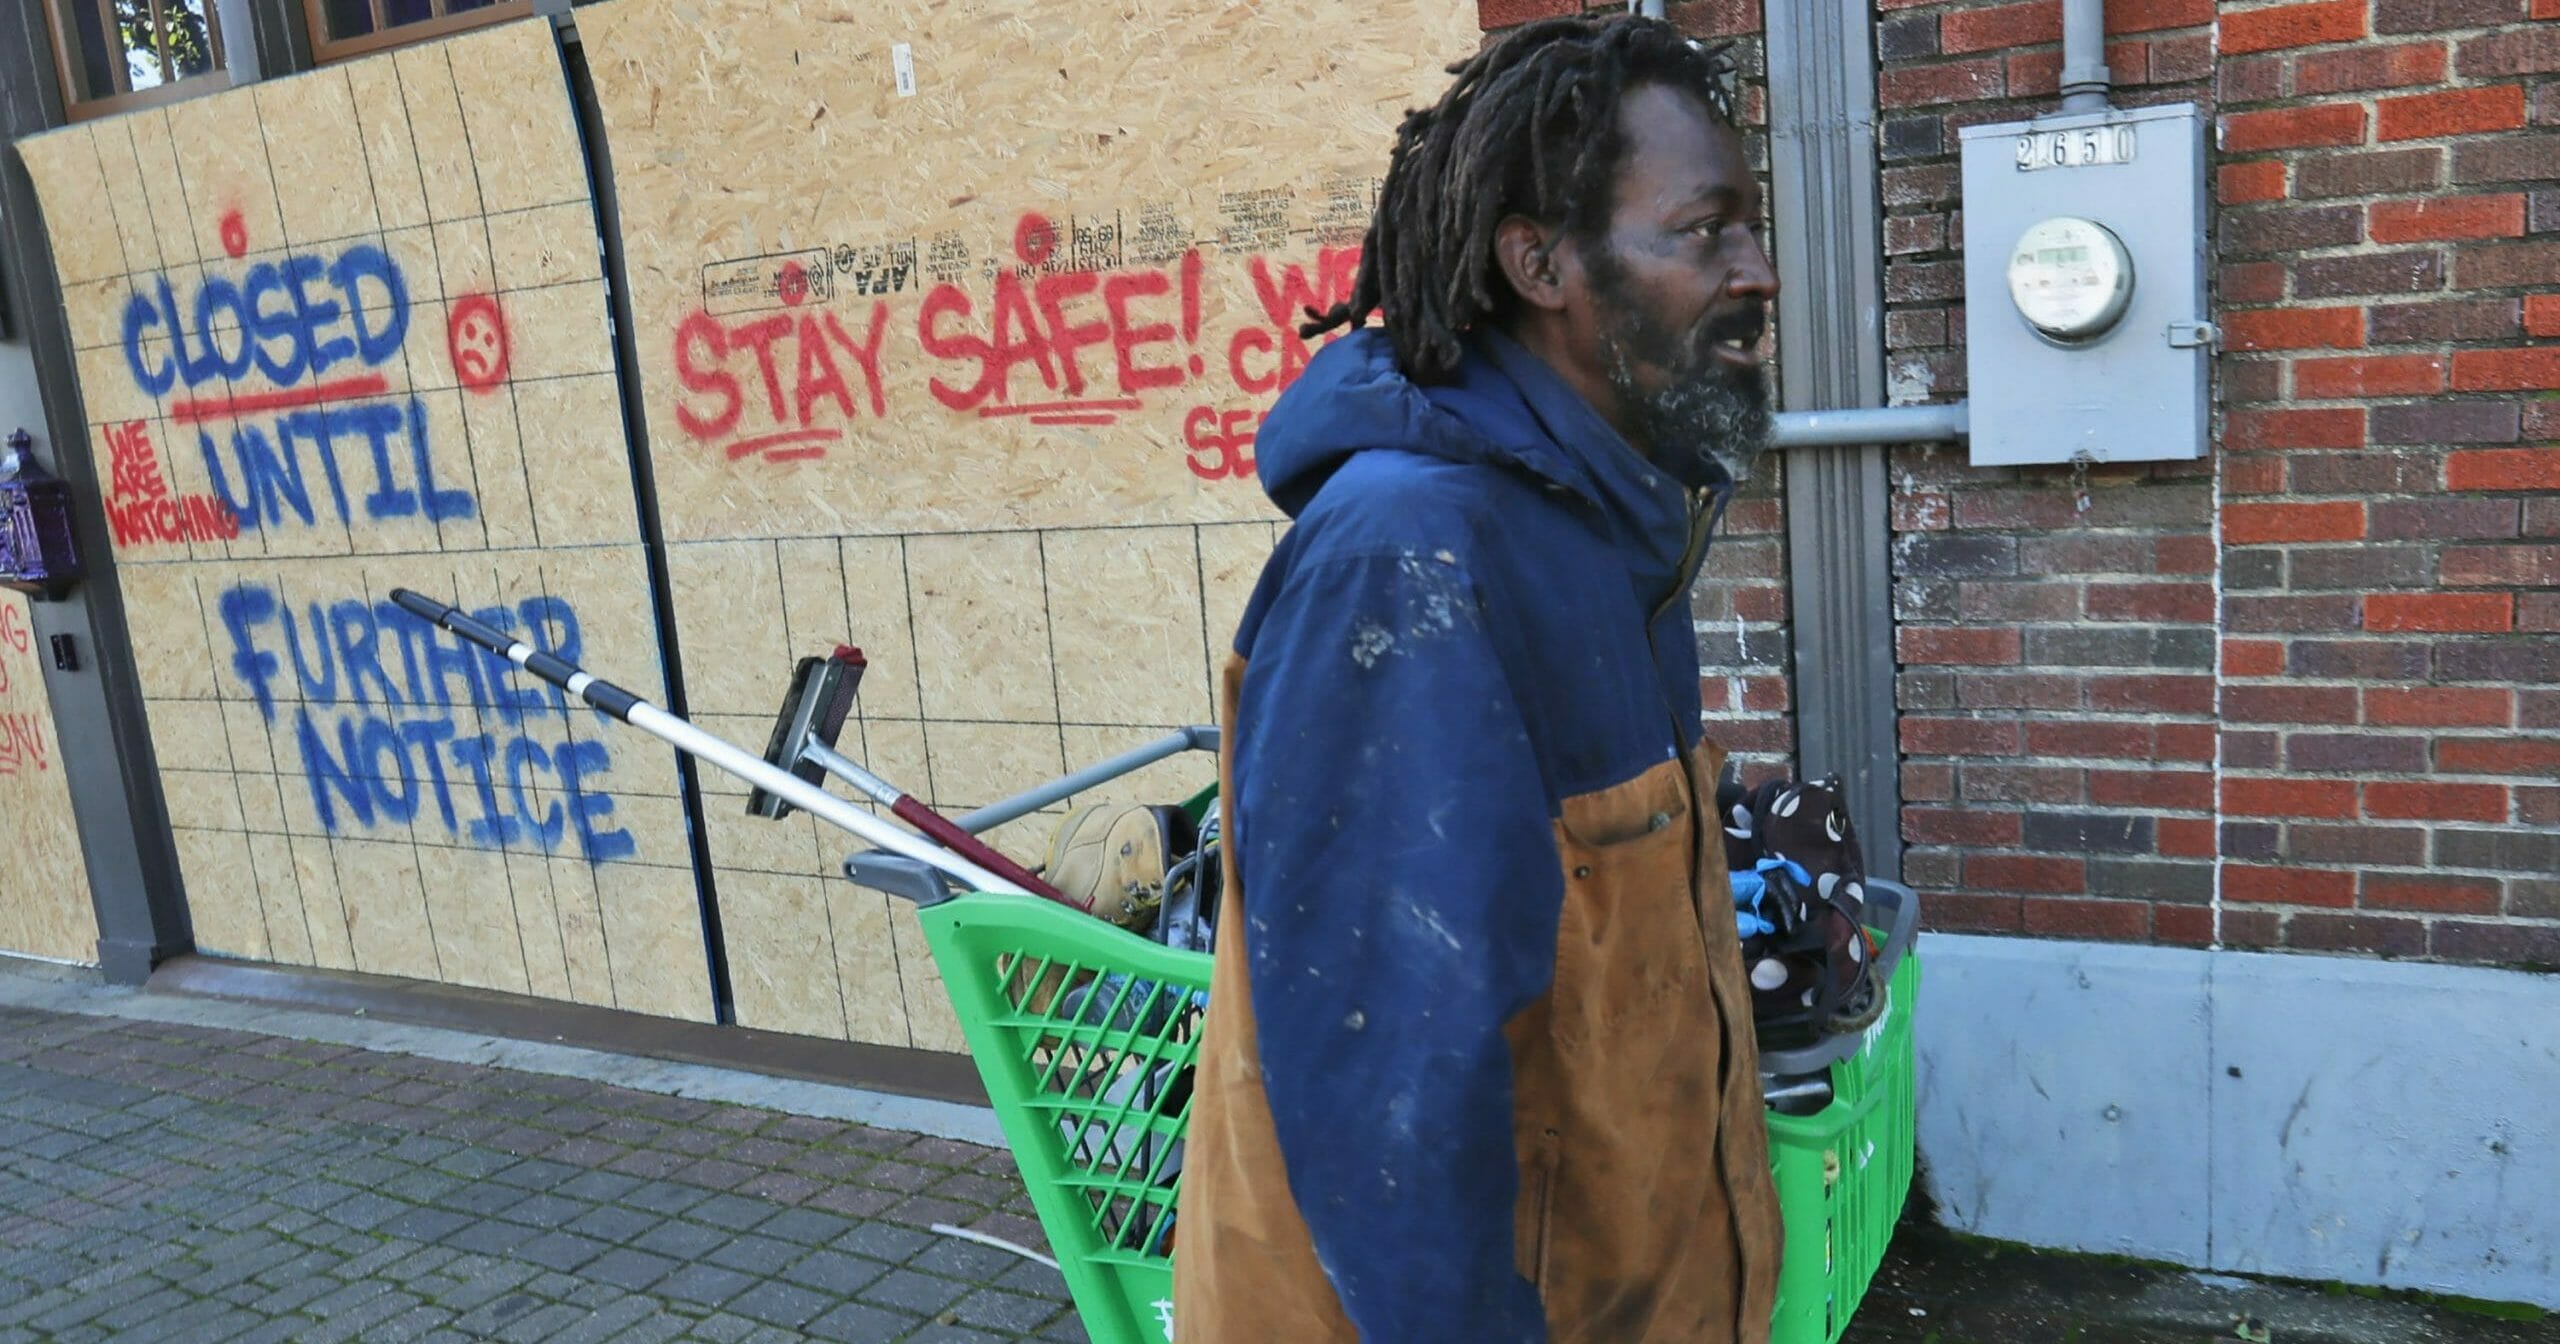 In this March 31, 2020, file photo, Vincent Amos, who identified himself as homeless, pulls a shopping cart with his belongings amid businesses closed by concerns of the COVID-19 coronavirus in the Deep Ellum section of Dallas.